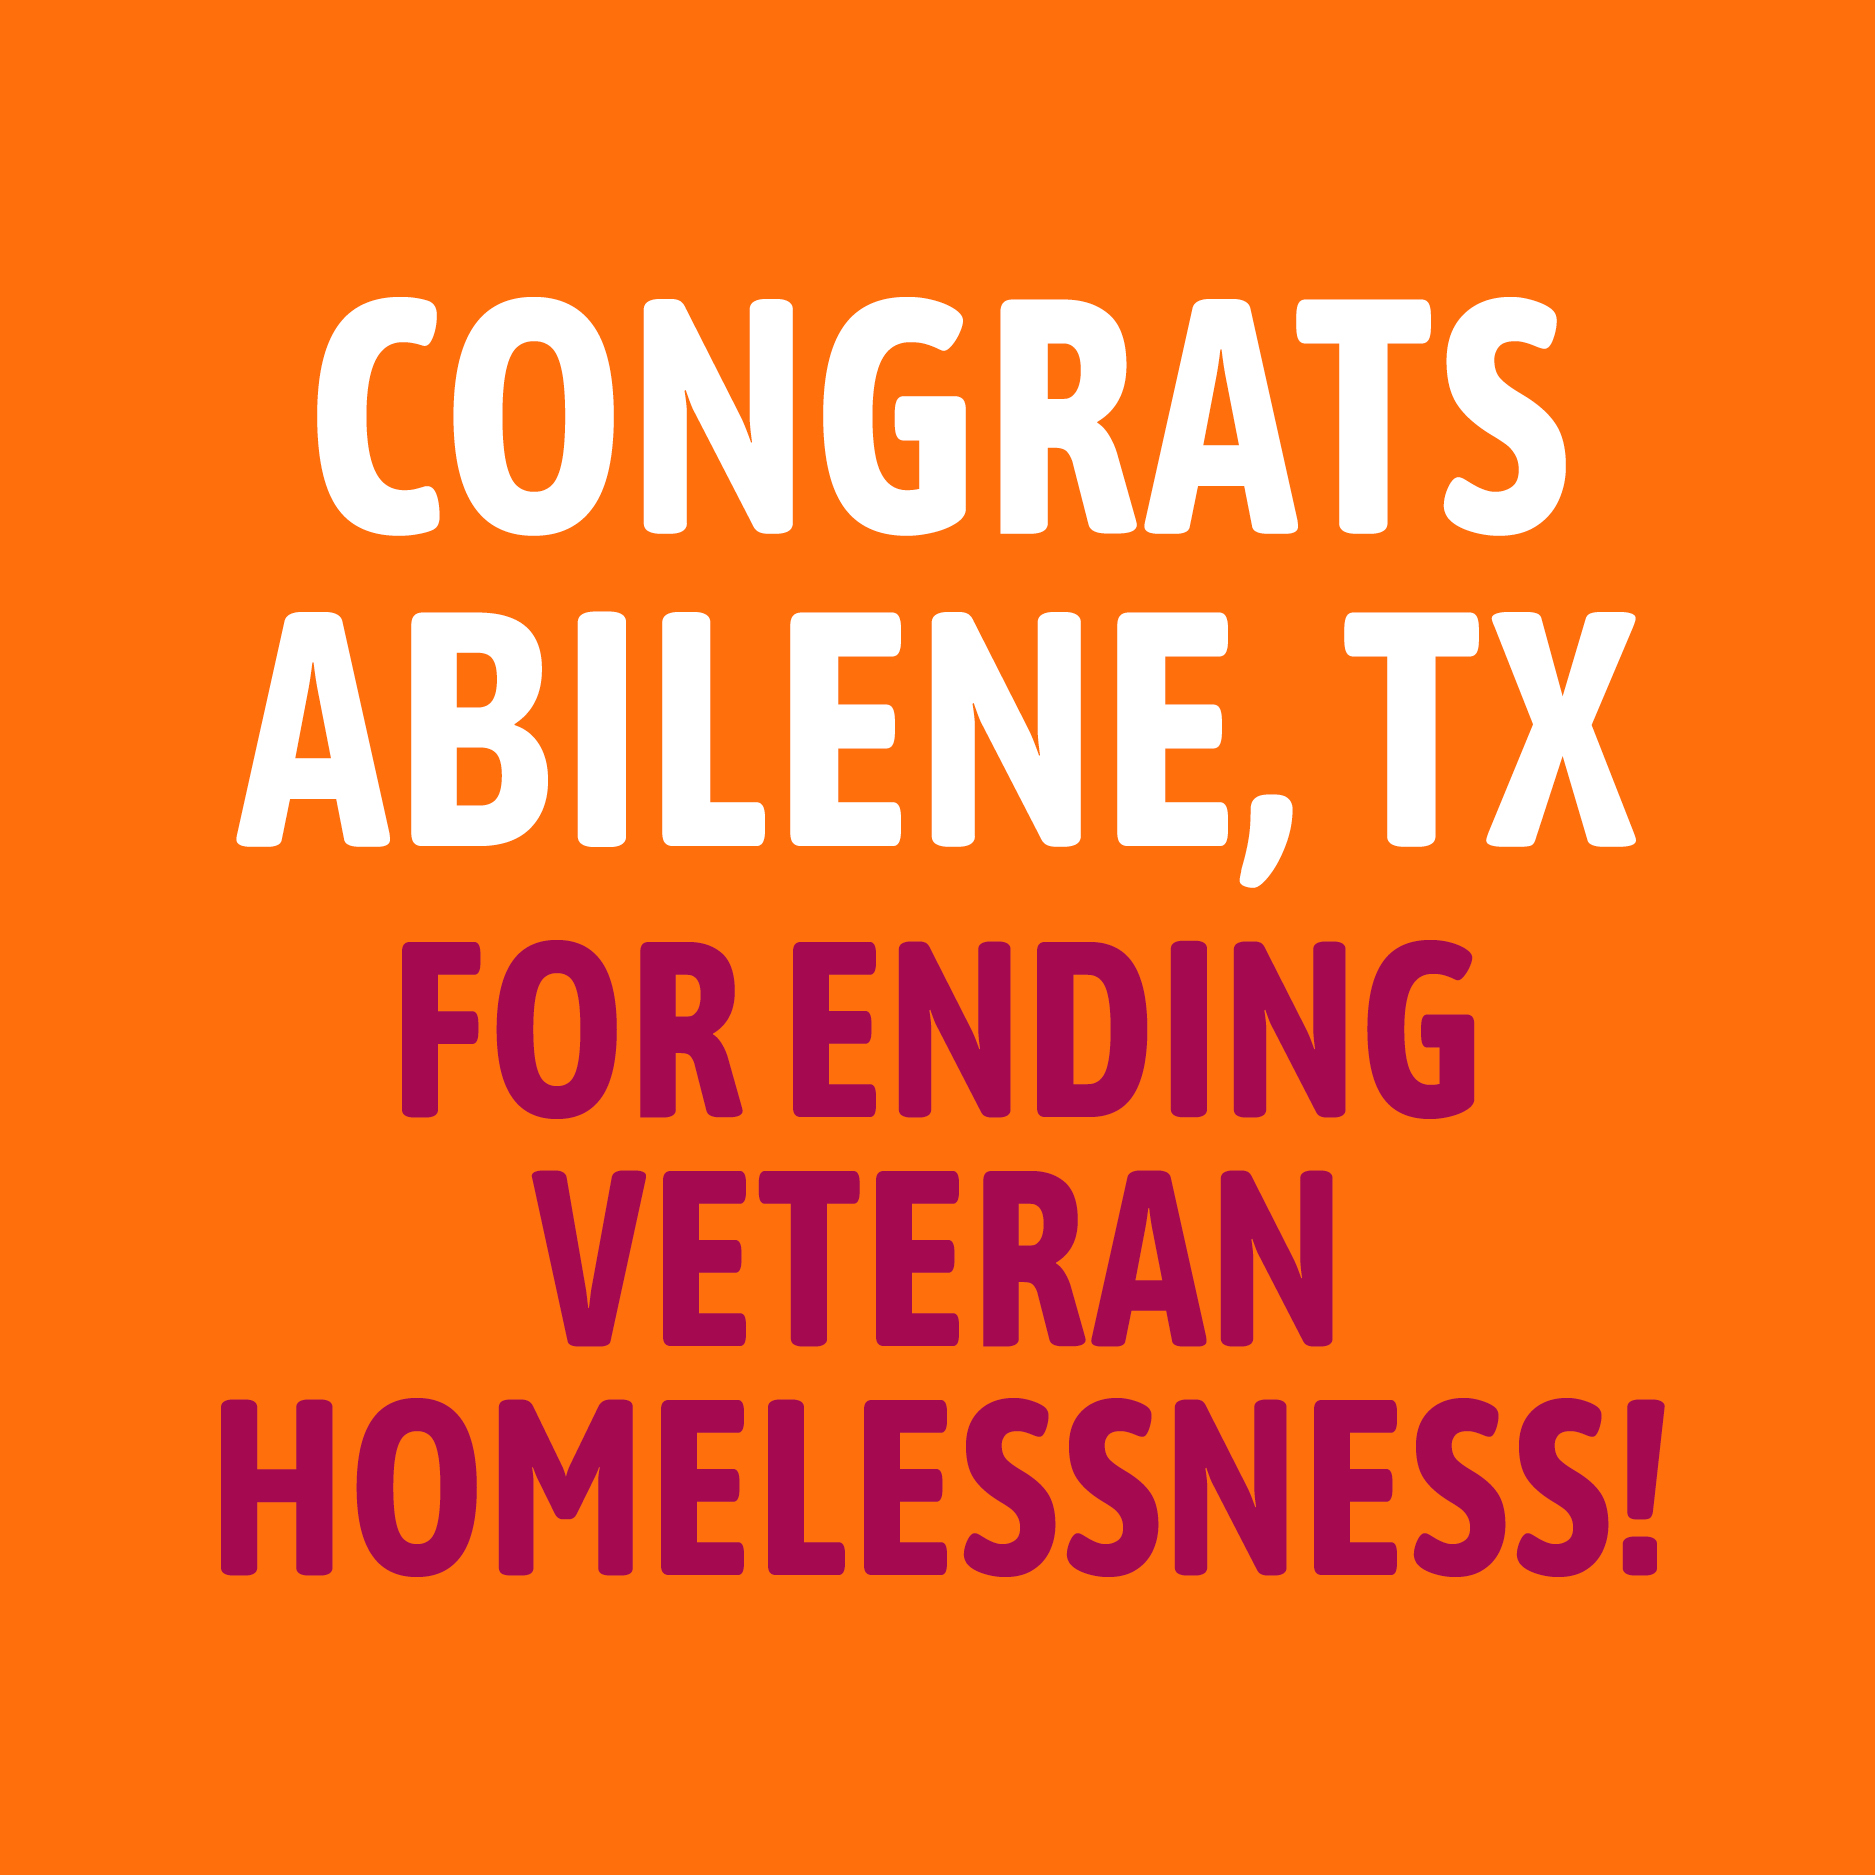 Ending Veteran Homelessness in Abilene - Abilene is now the 9th community in the country to successfully end veteran homelessness!